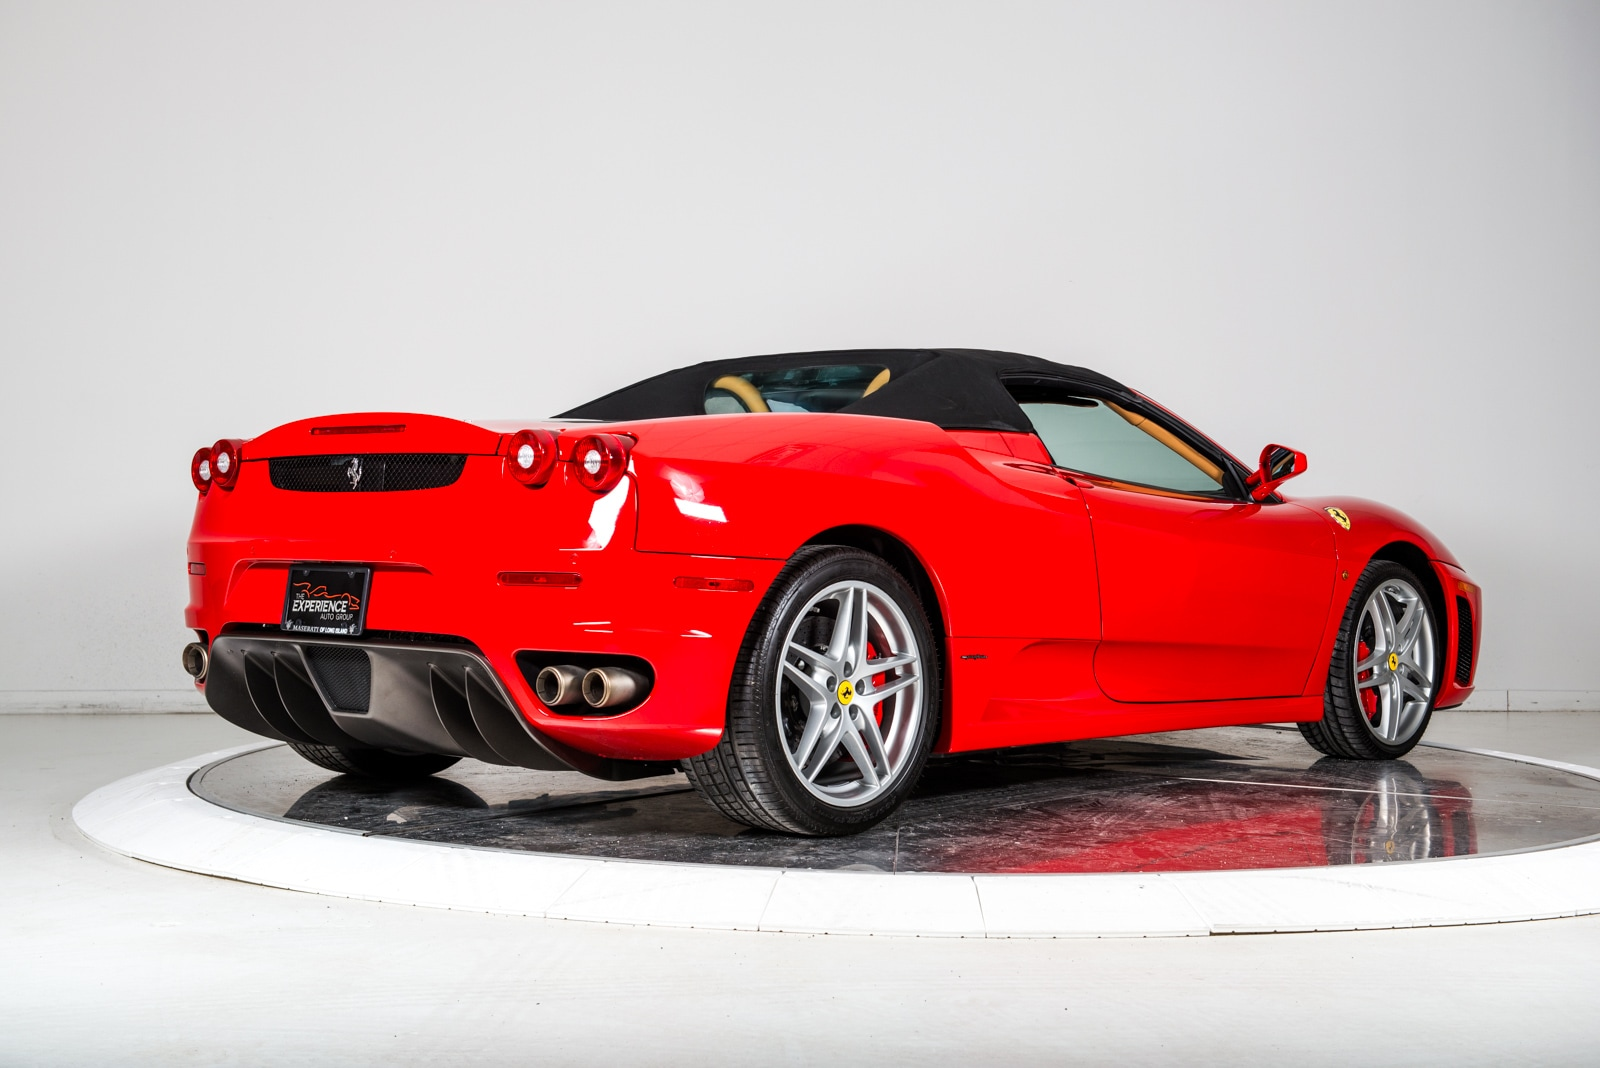 used 2008 ferrari f430 spider f1 for sale plainview near long island ny vin zffew59a380162554. Black Bedroom Furniture Sets. Home Design Ideas